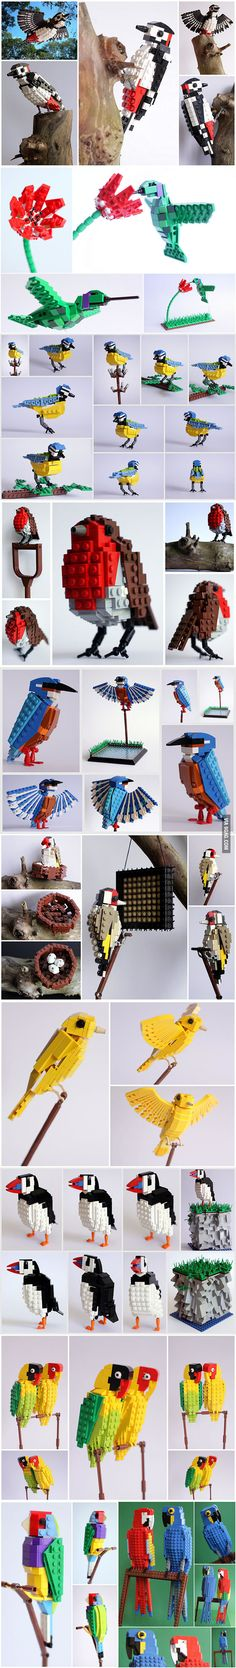 LEGO Birds Awesome LEGO Birds - finally something that makes me respect Legos again.Awesome LEGO Birds - finally something that makes me respect Legos again. Lego Duplo, Lego Design, Activities For Kids, Crafts For Kids, Lego Challenge, Lego Boards, Lego Club, Lego Craft, Lego For Kids